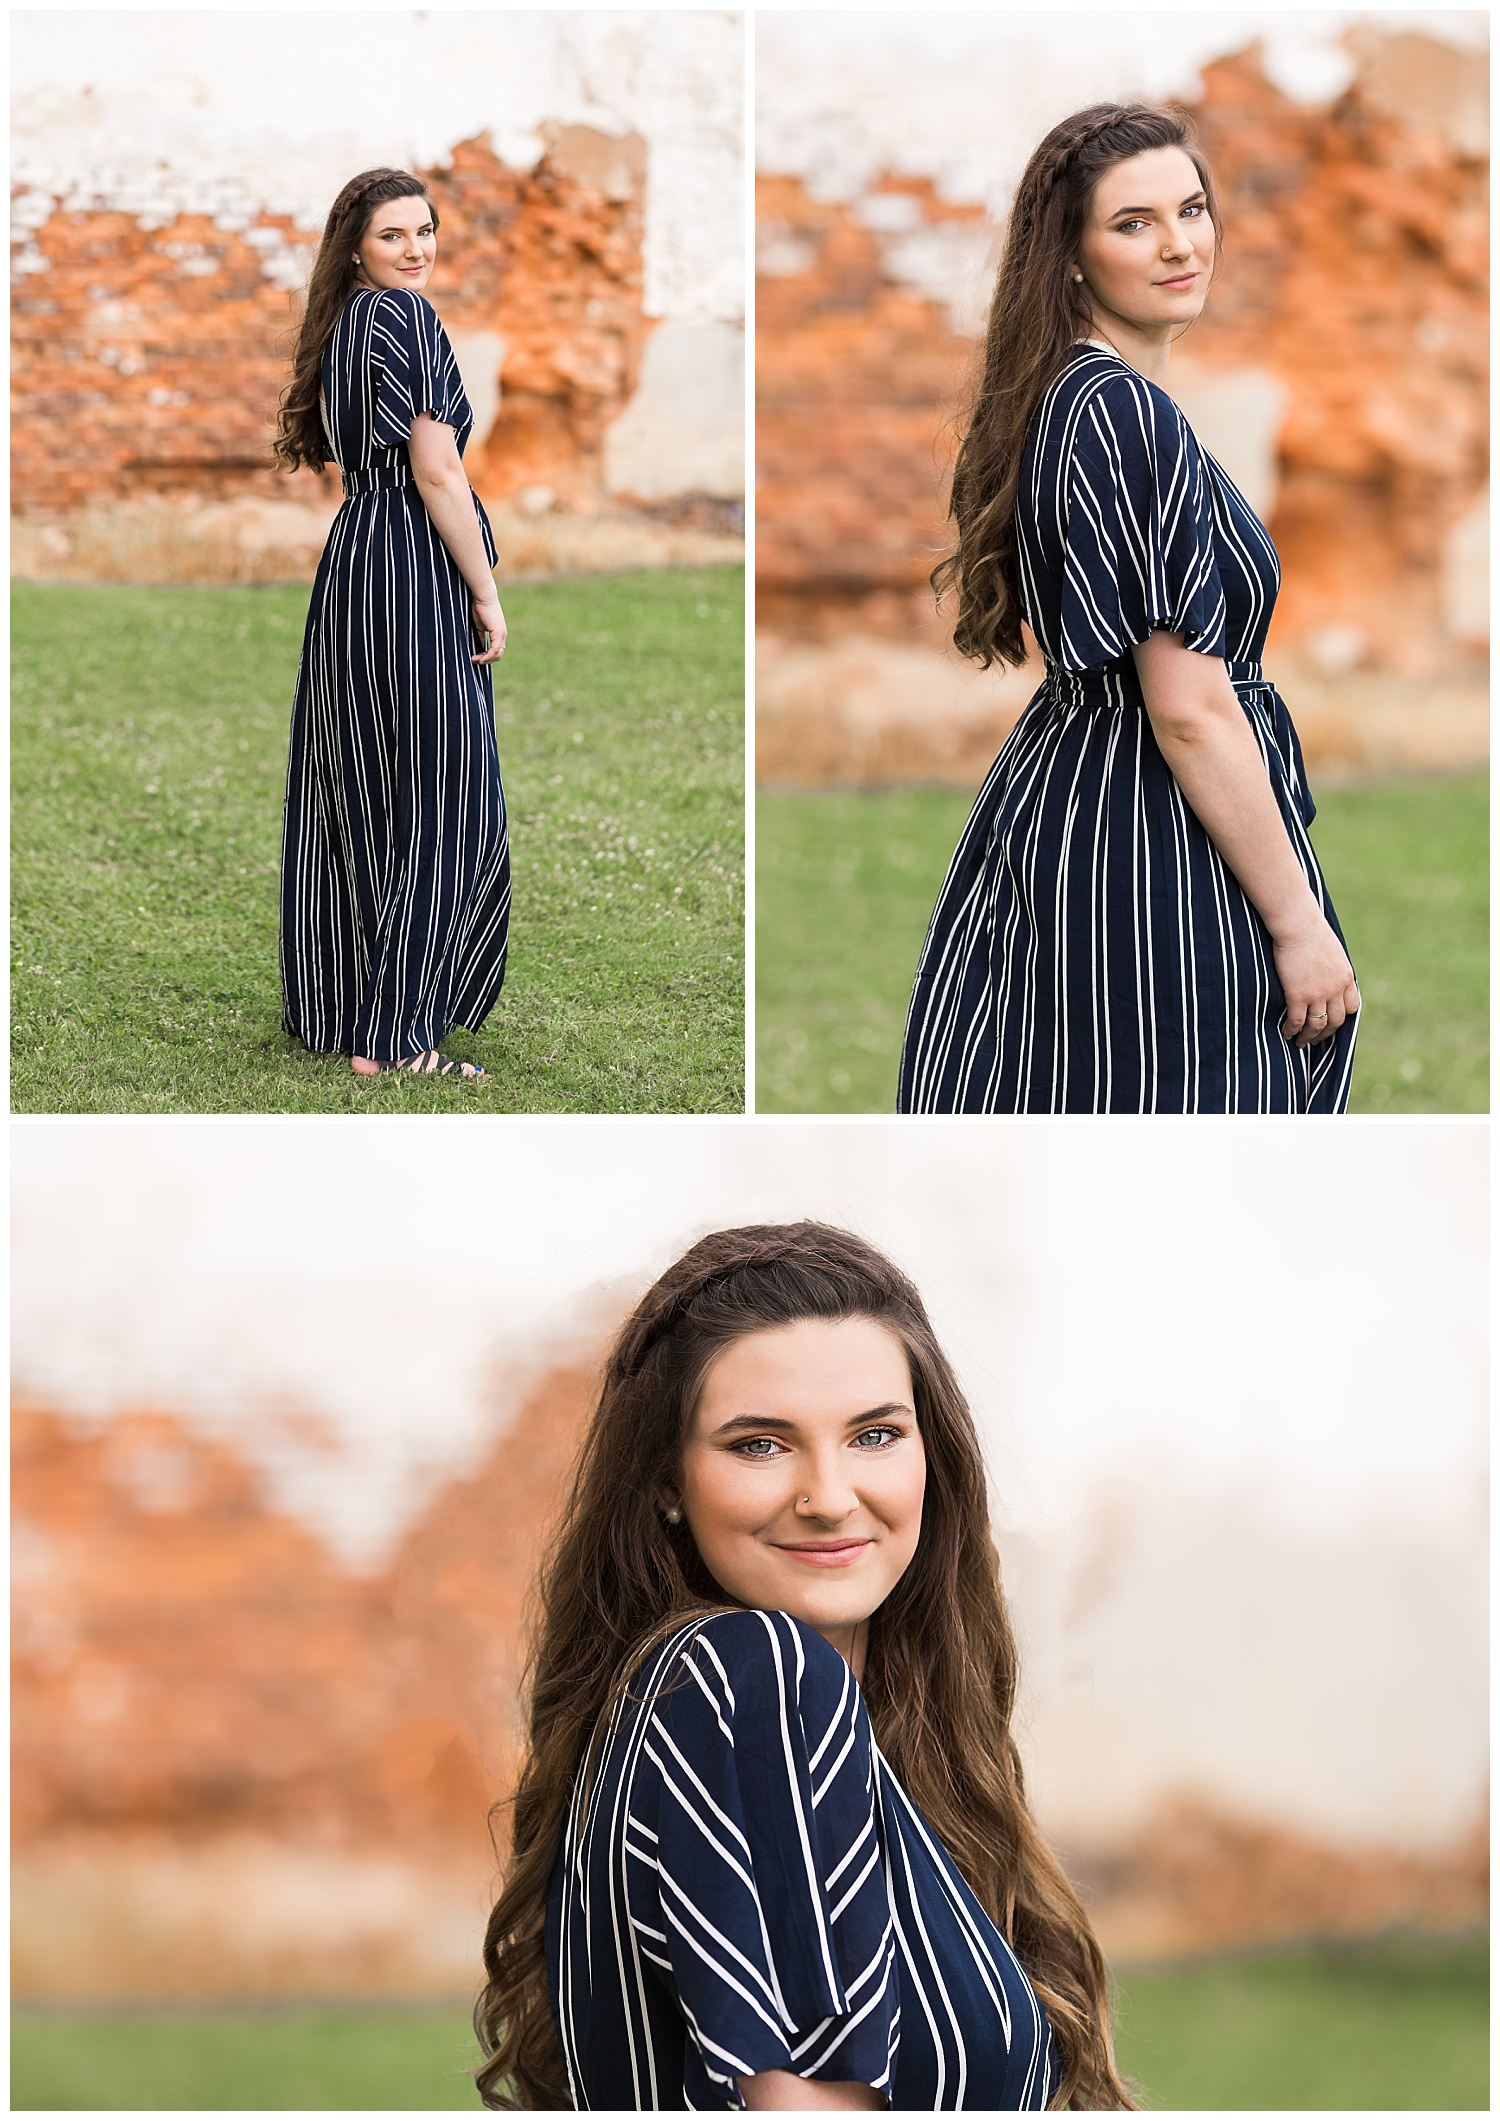 historic downtown opelika portraits lauren beesley photography